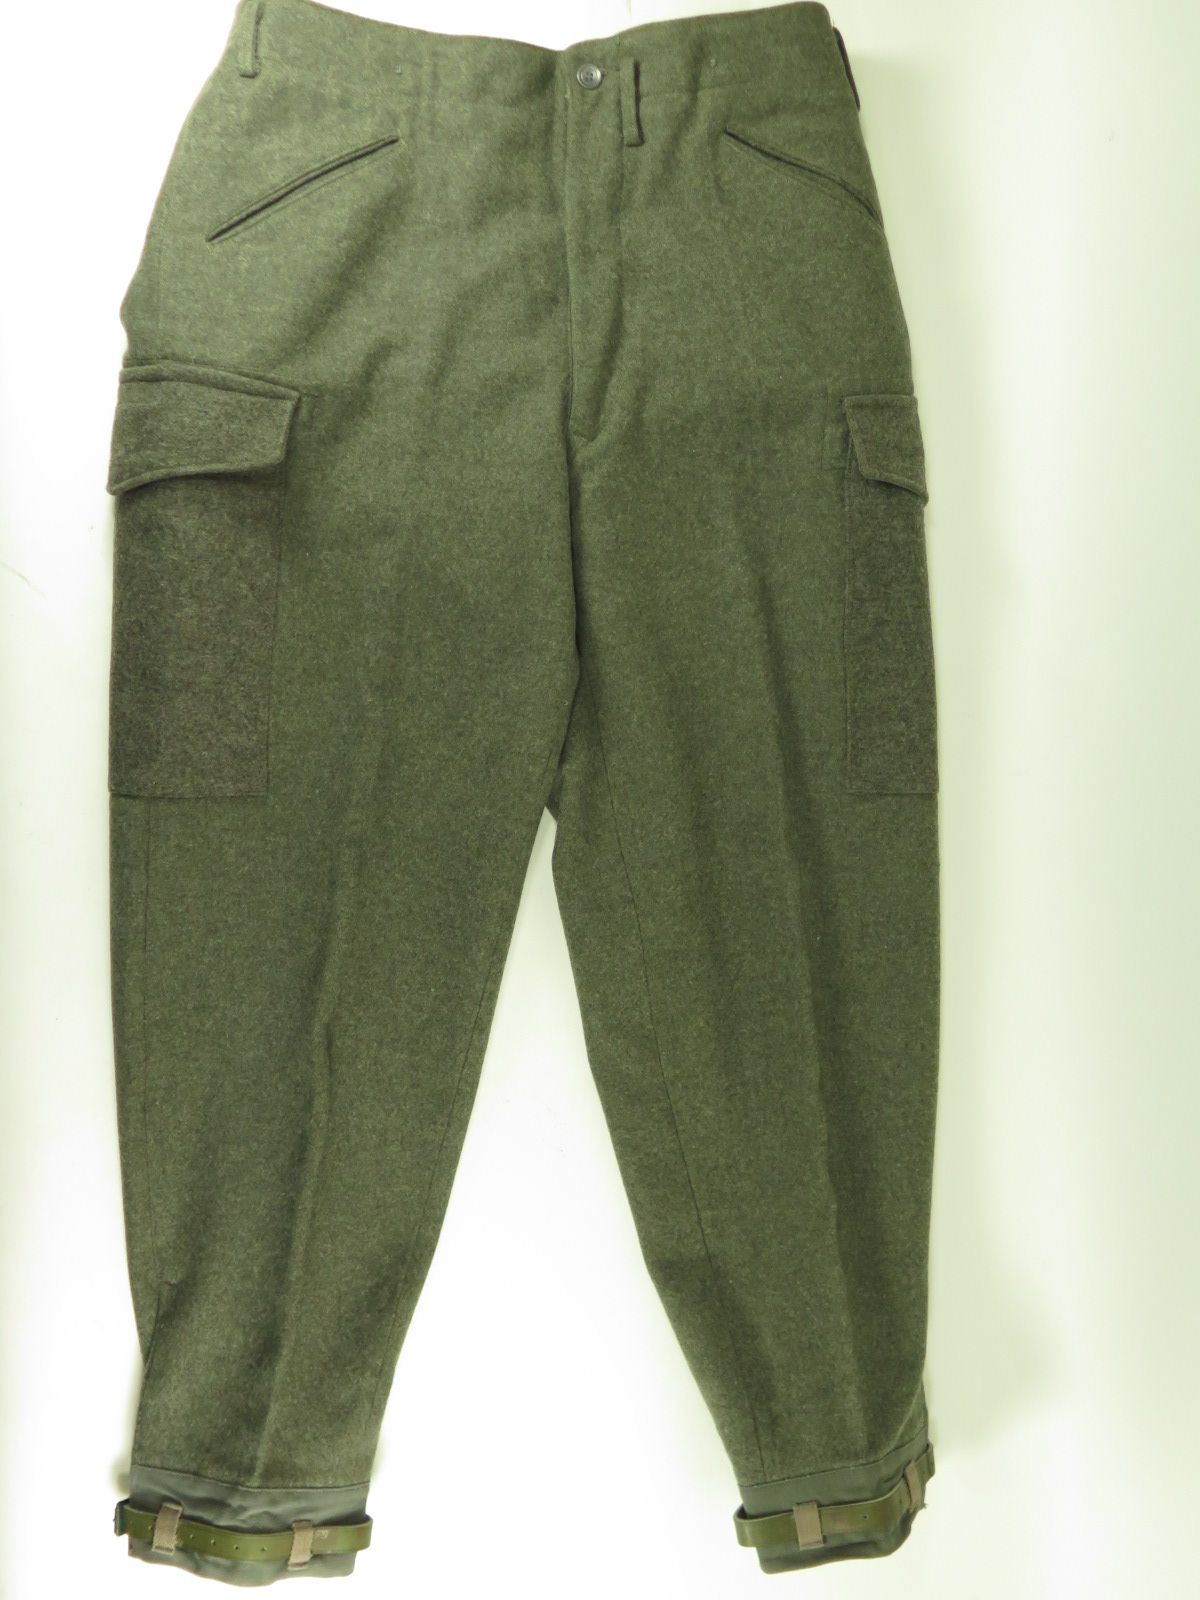 Vintage 1941 Swedish Military Wool Trousers. Find more men s and women s  authentic vintage clothing at The Clothing Vault. cc5ad20f14